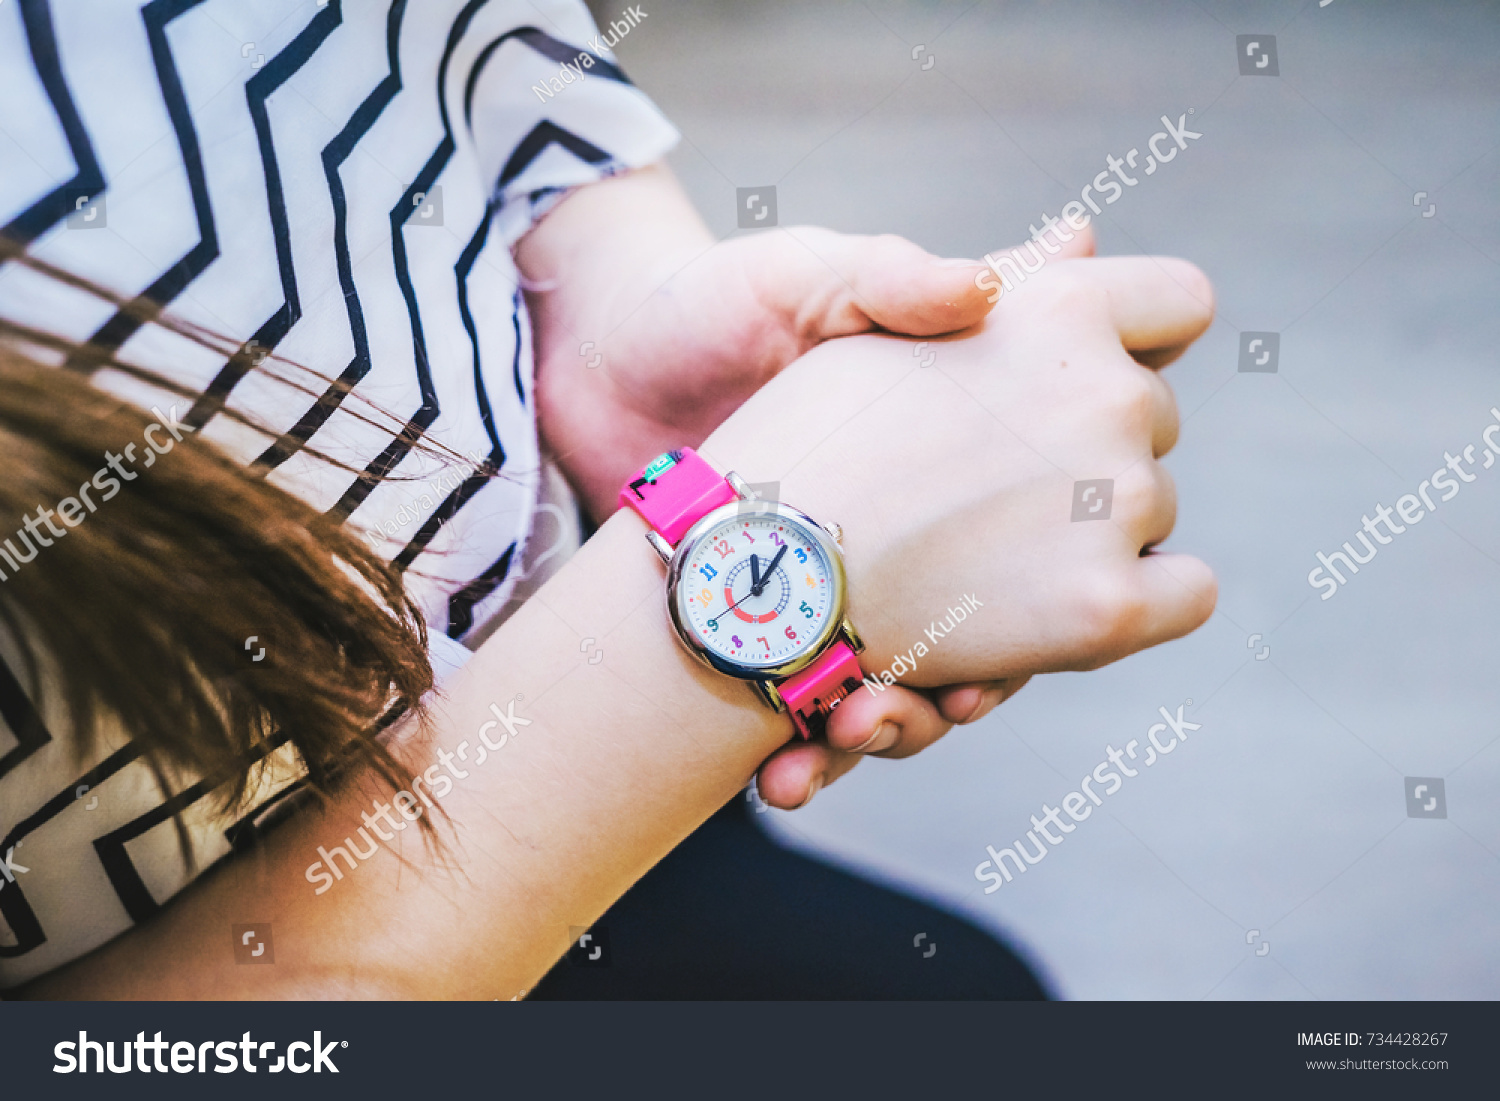 Girl Looks Time On Her Pink Stock Photo 734428267 - Shutterstock